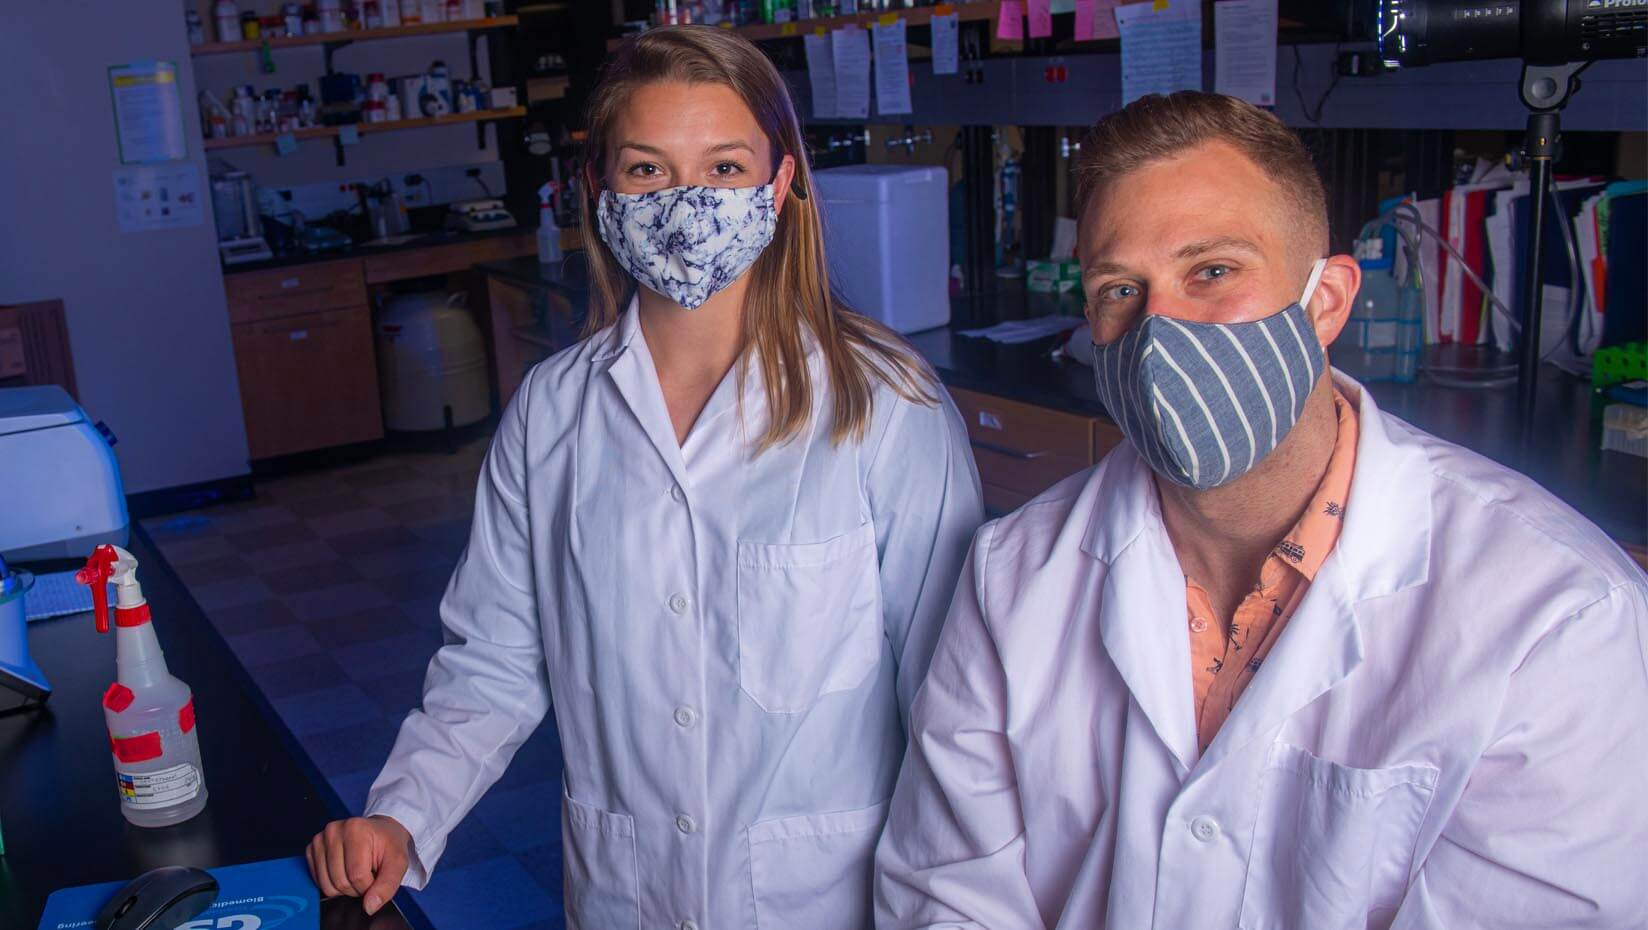 Two students wearing face coverings stand in a lab